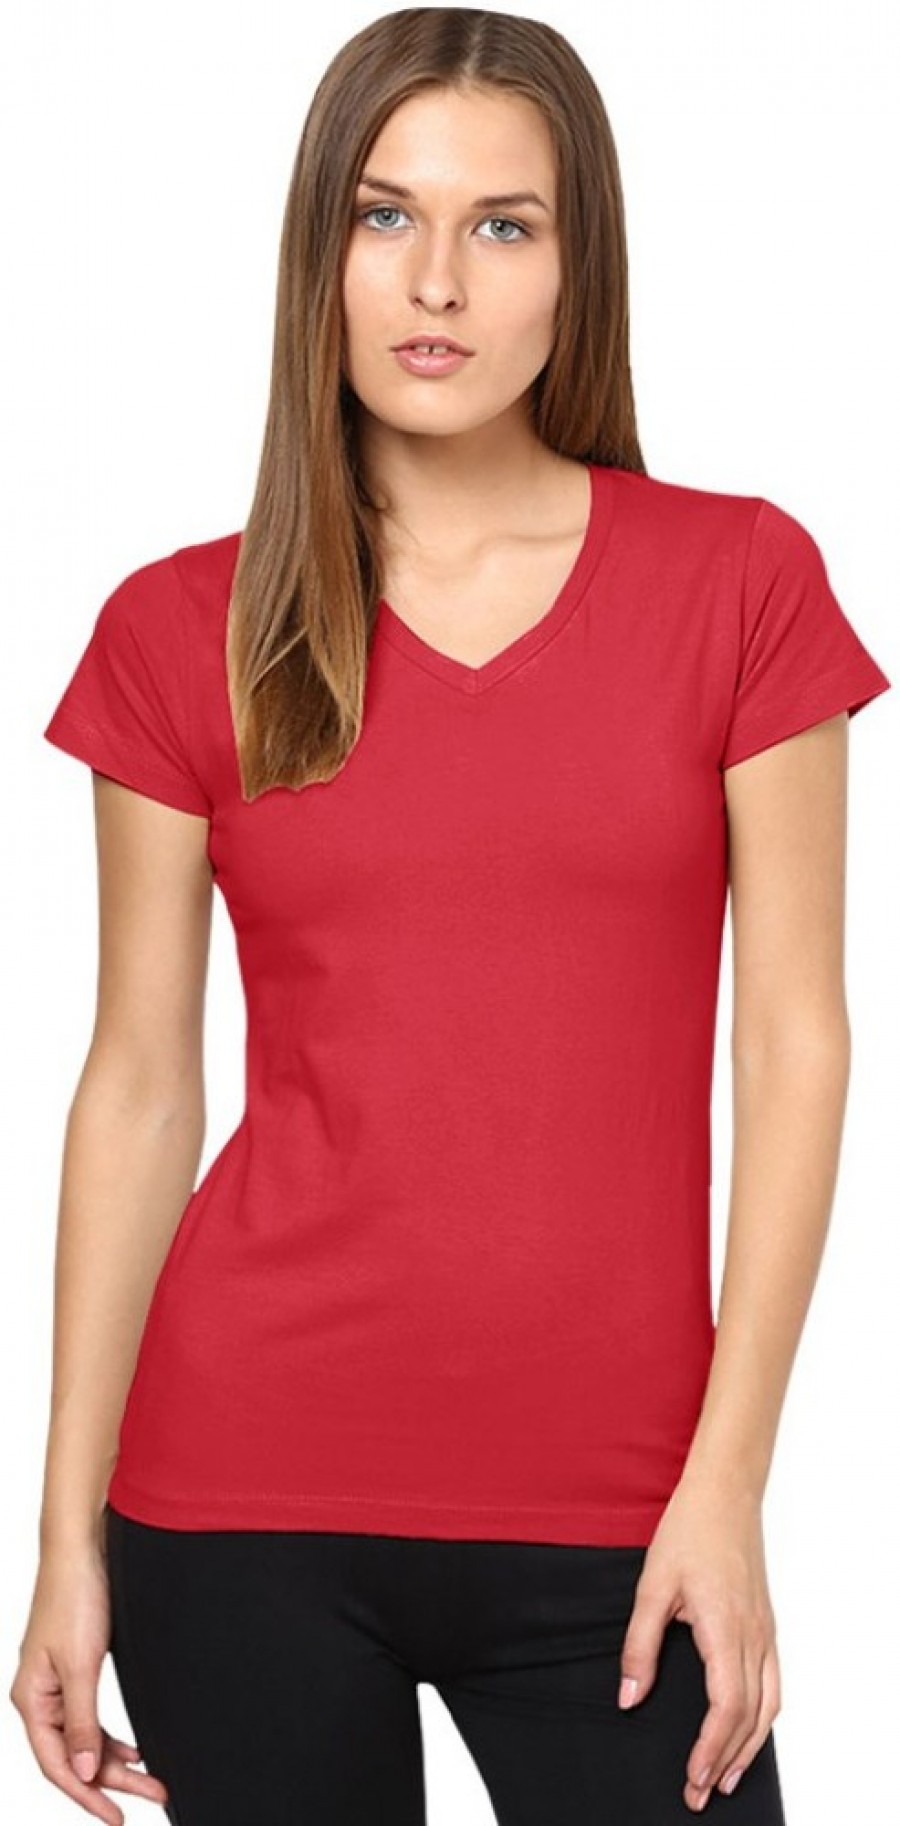 softwear-solid-women-v-neck-red-t-shirt.jpg